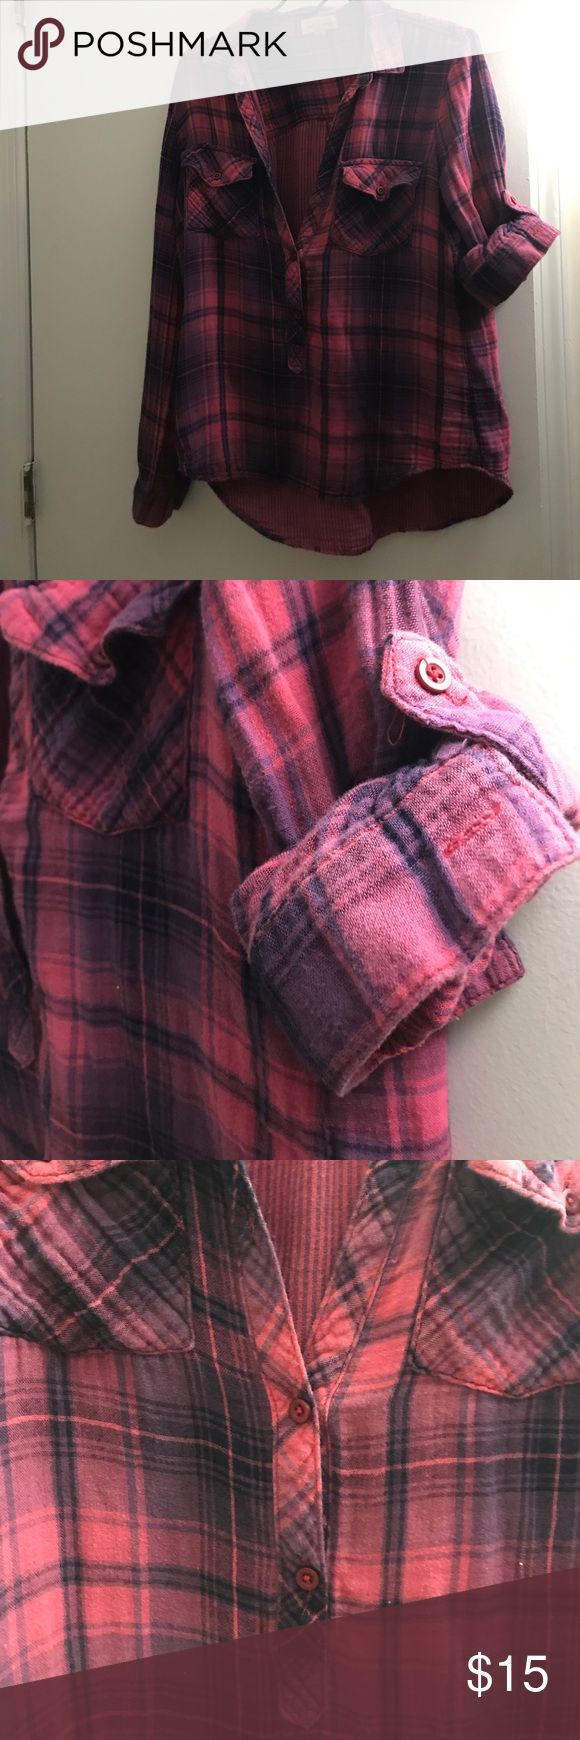 Flannel very low cut. there is a button missing. two pockets on the front. sleeves have option to roll them up or keep them long. very comfy. the brand is cloth and stone. bought it from south moon under. Tops Button Down Shirts